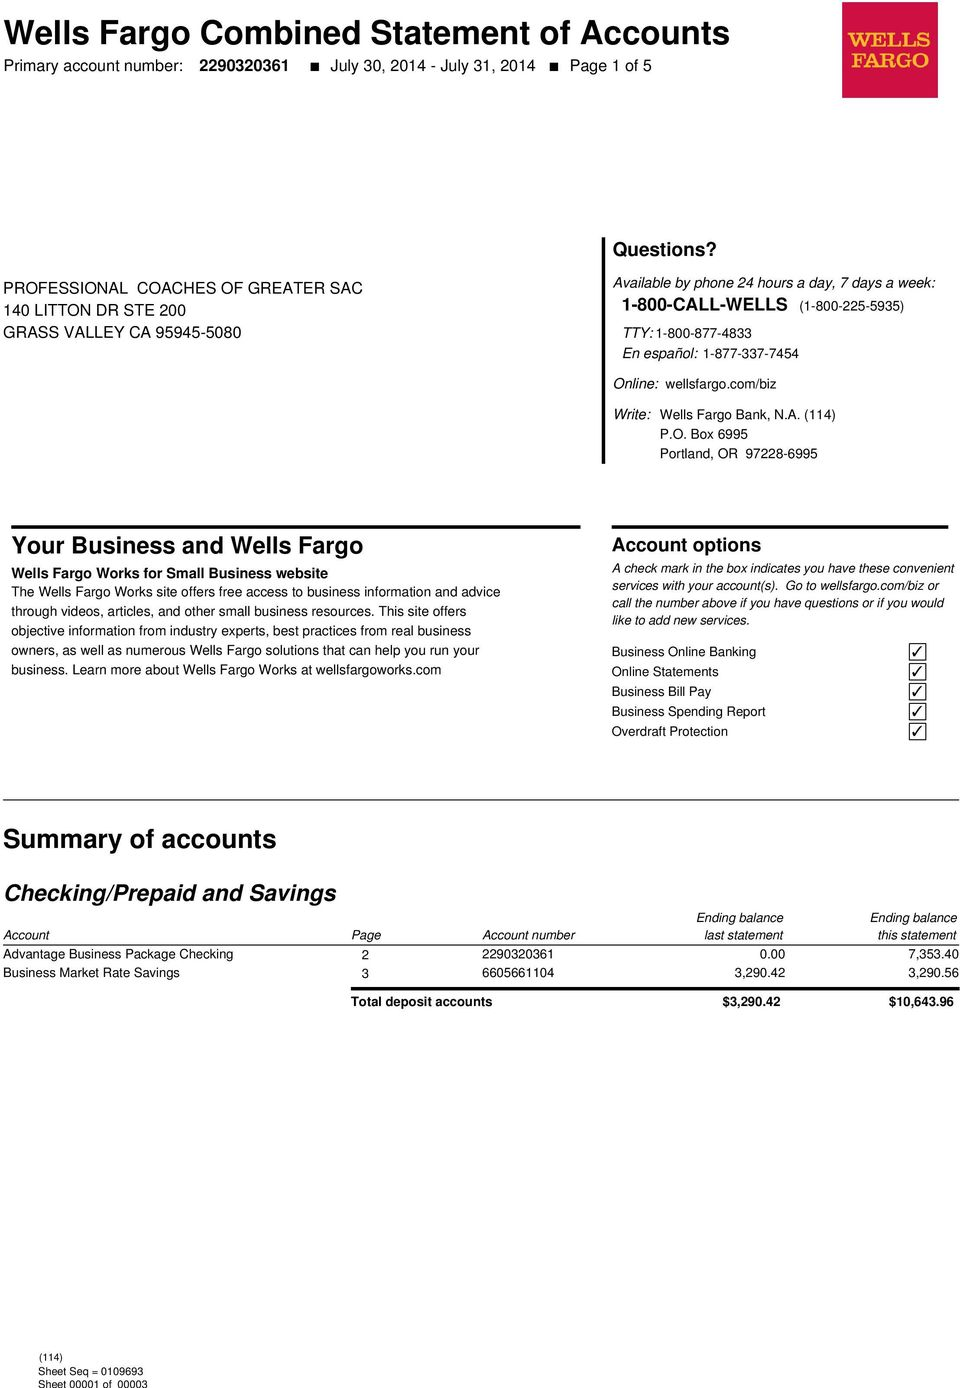 Wells Fargo Combined Statement of Accounts - PDF